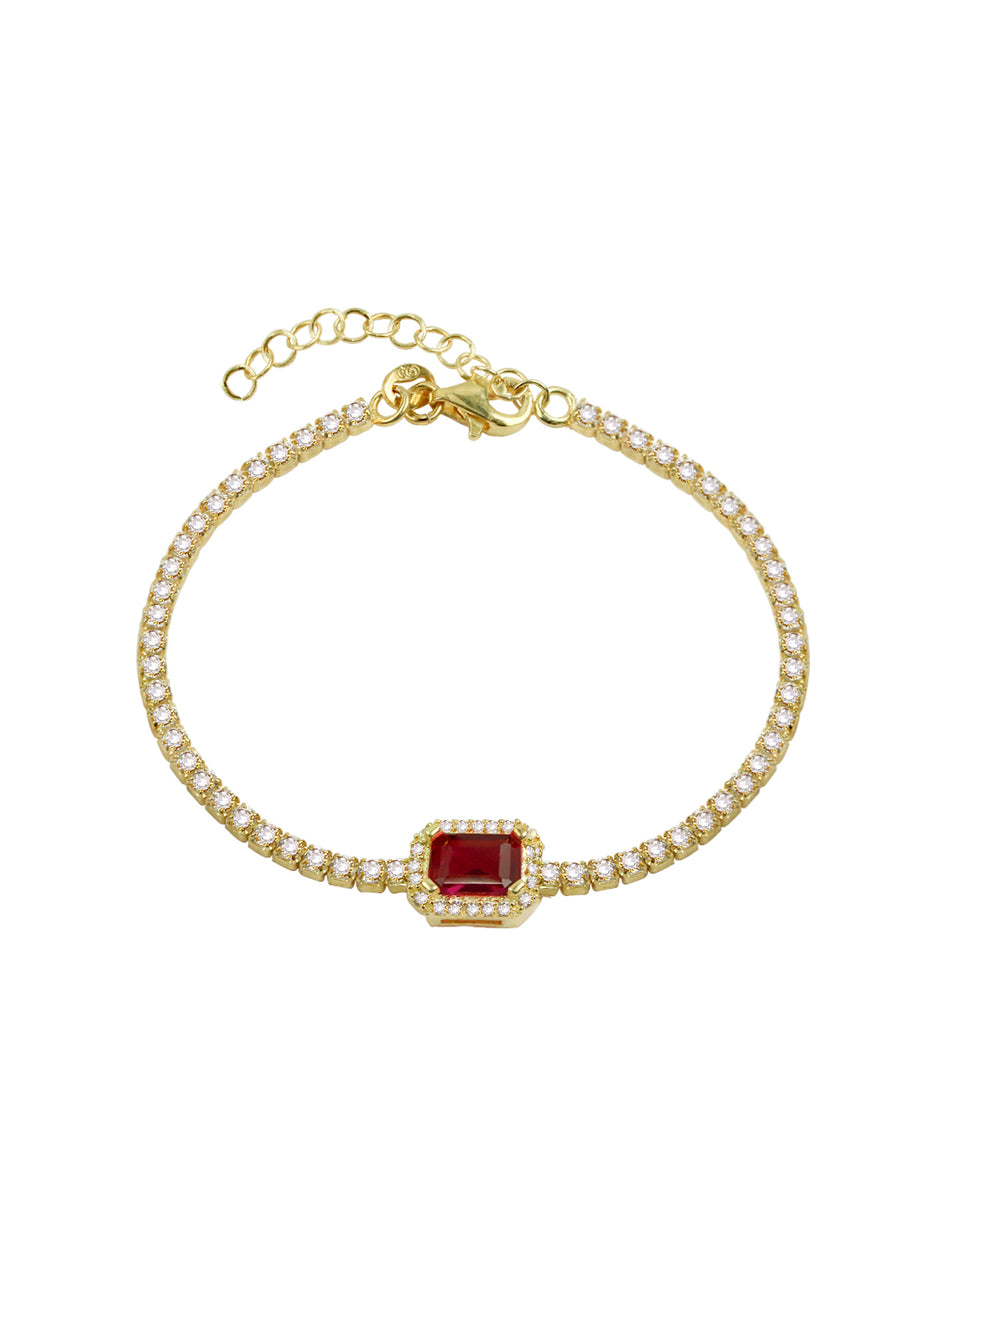 THE RADIANT HALO TENNIS BRACELET (CHAPTER II BY GREG YÜNA X THE M JEWELERS)